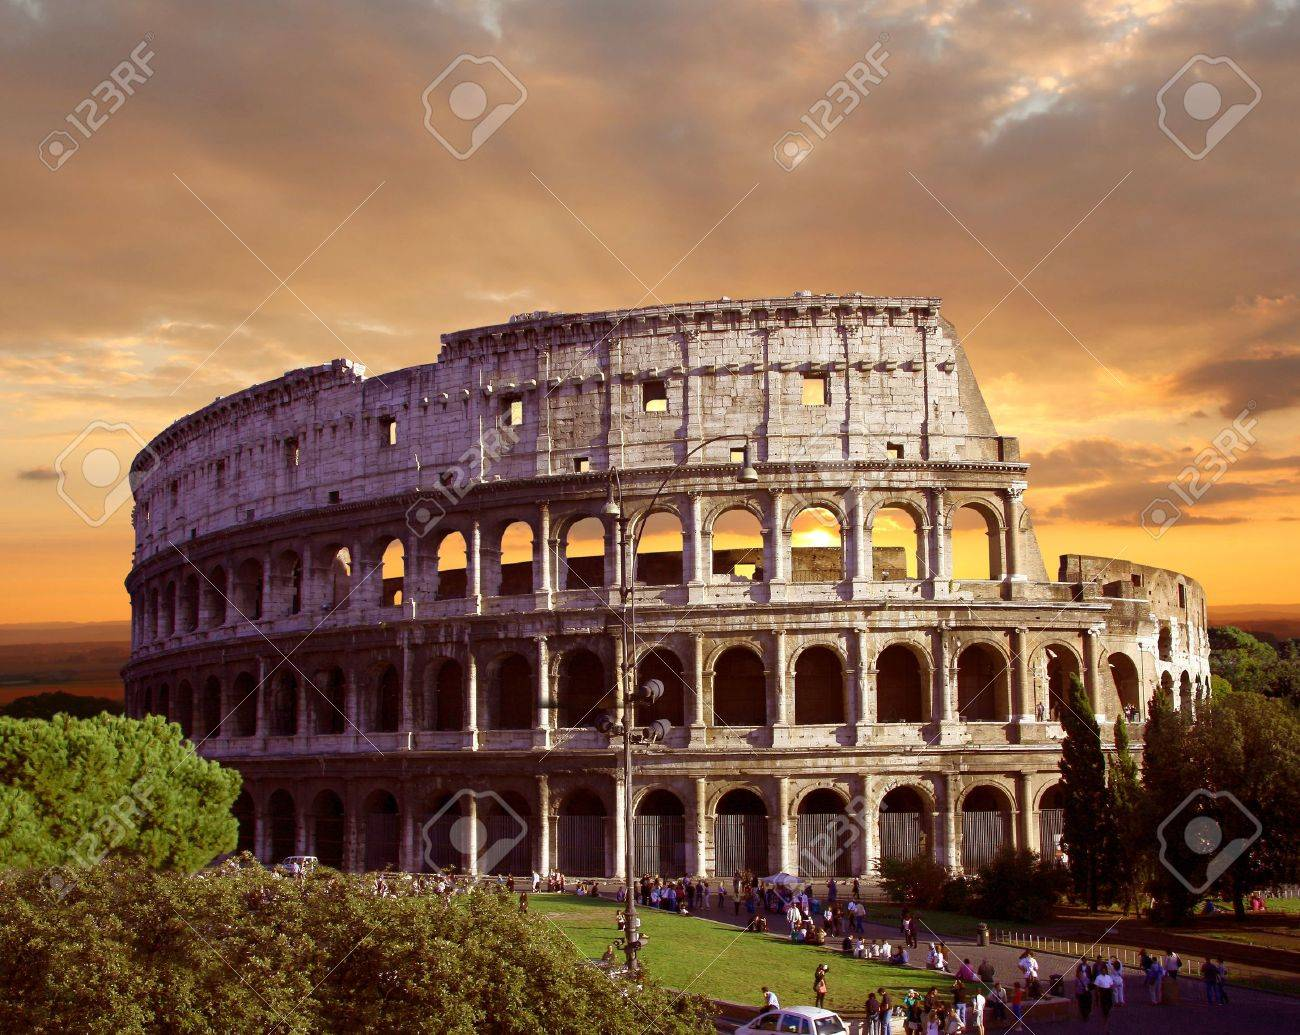 Famous Colosseum in Rome, Italy - 17773409